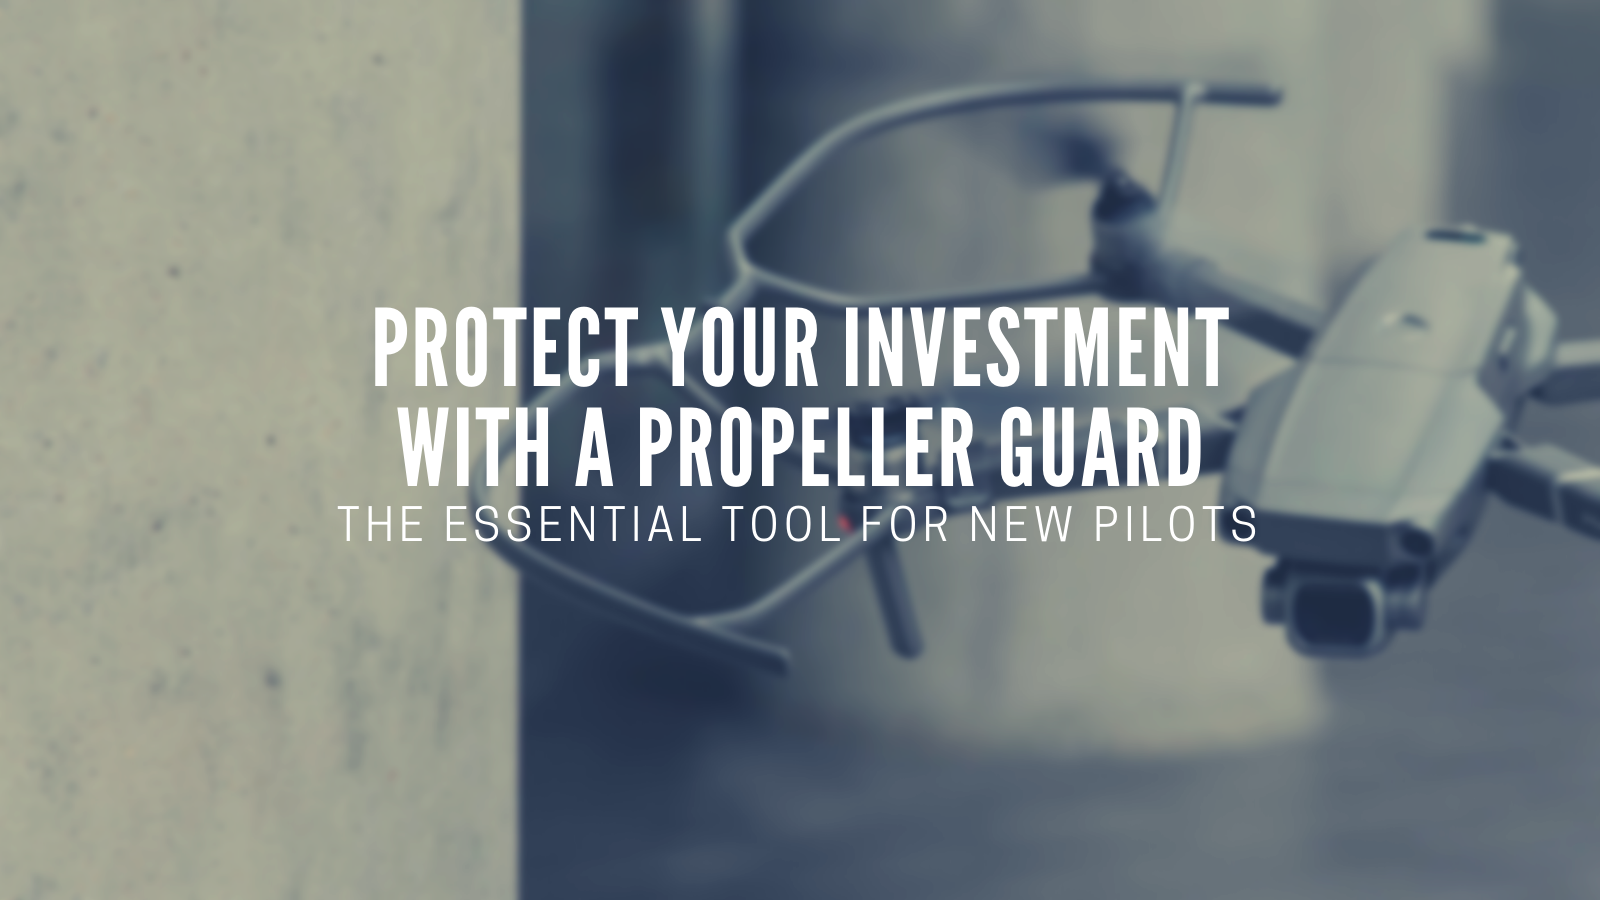 Protect Your Investment With a Propeller Guard